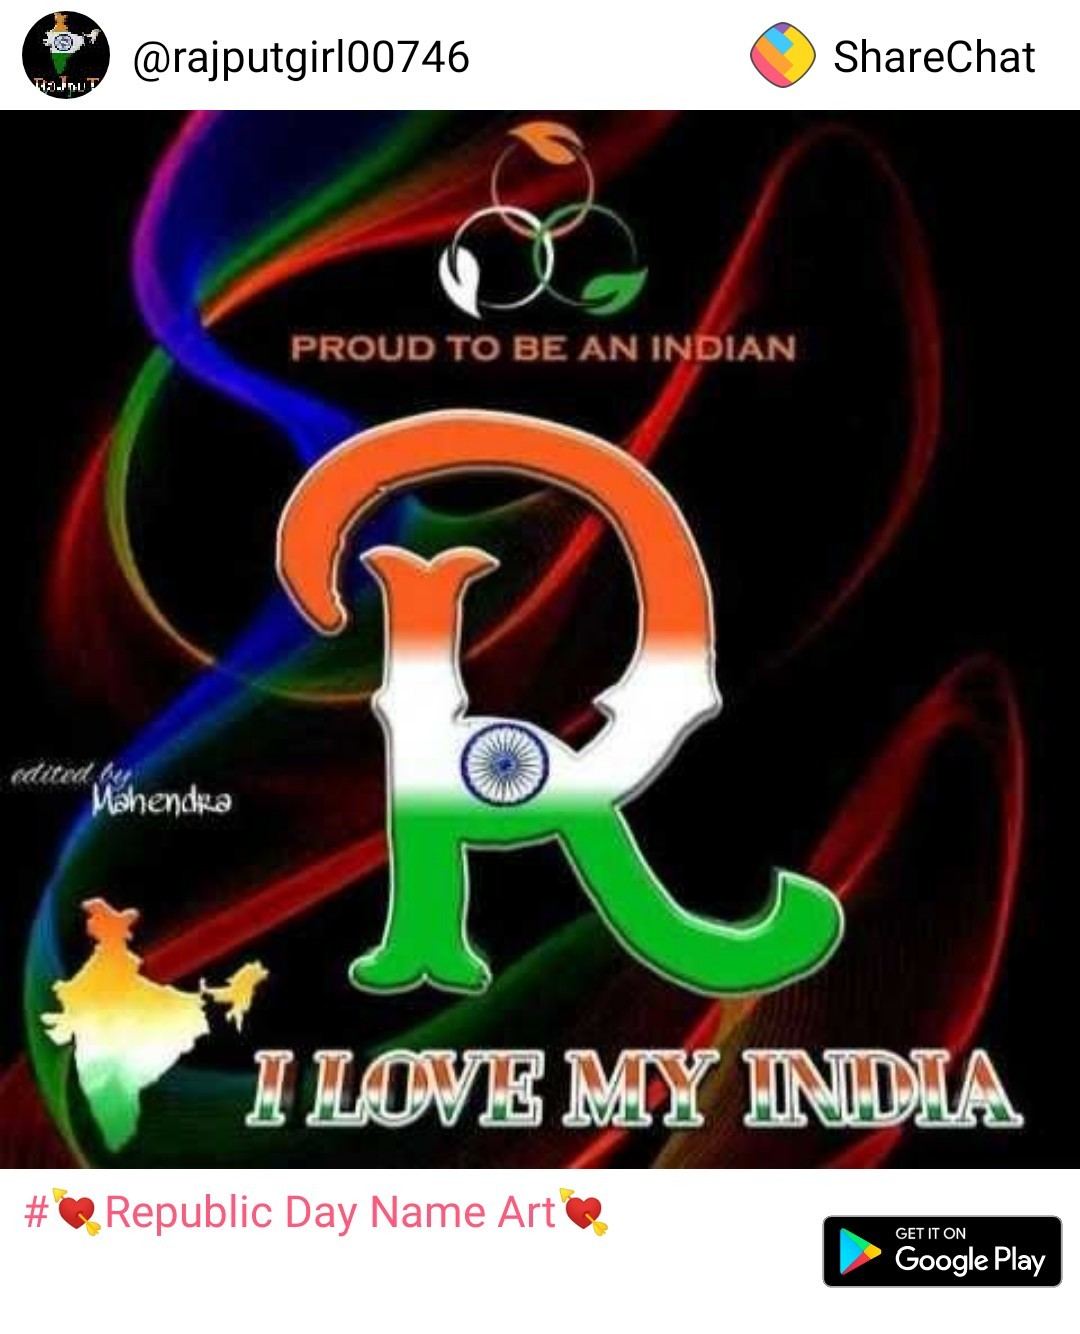 🎶रोमांटिक गाने - @ rajputgirl00746 ShareChat Tanu PROUD TO BE AN INDIAN odited by Mahendra I LOVE MY INDIA # Republic Day Name Art GET IT ON Google Play - ShareChat